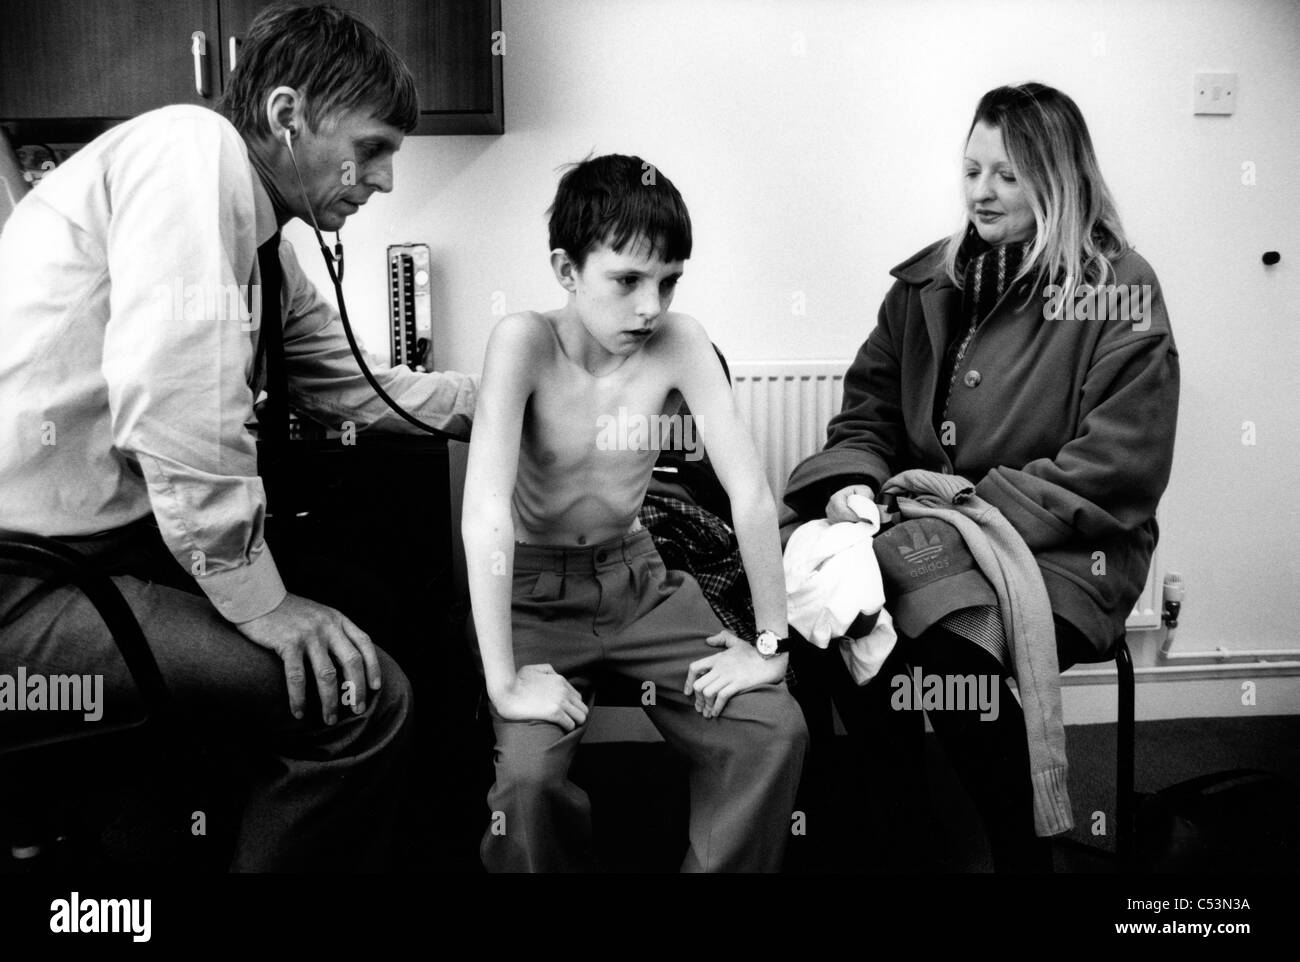 Patient visting a GP in his surgery. Liverpool, 1999. England, United Kingdom Stock Photo